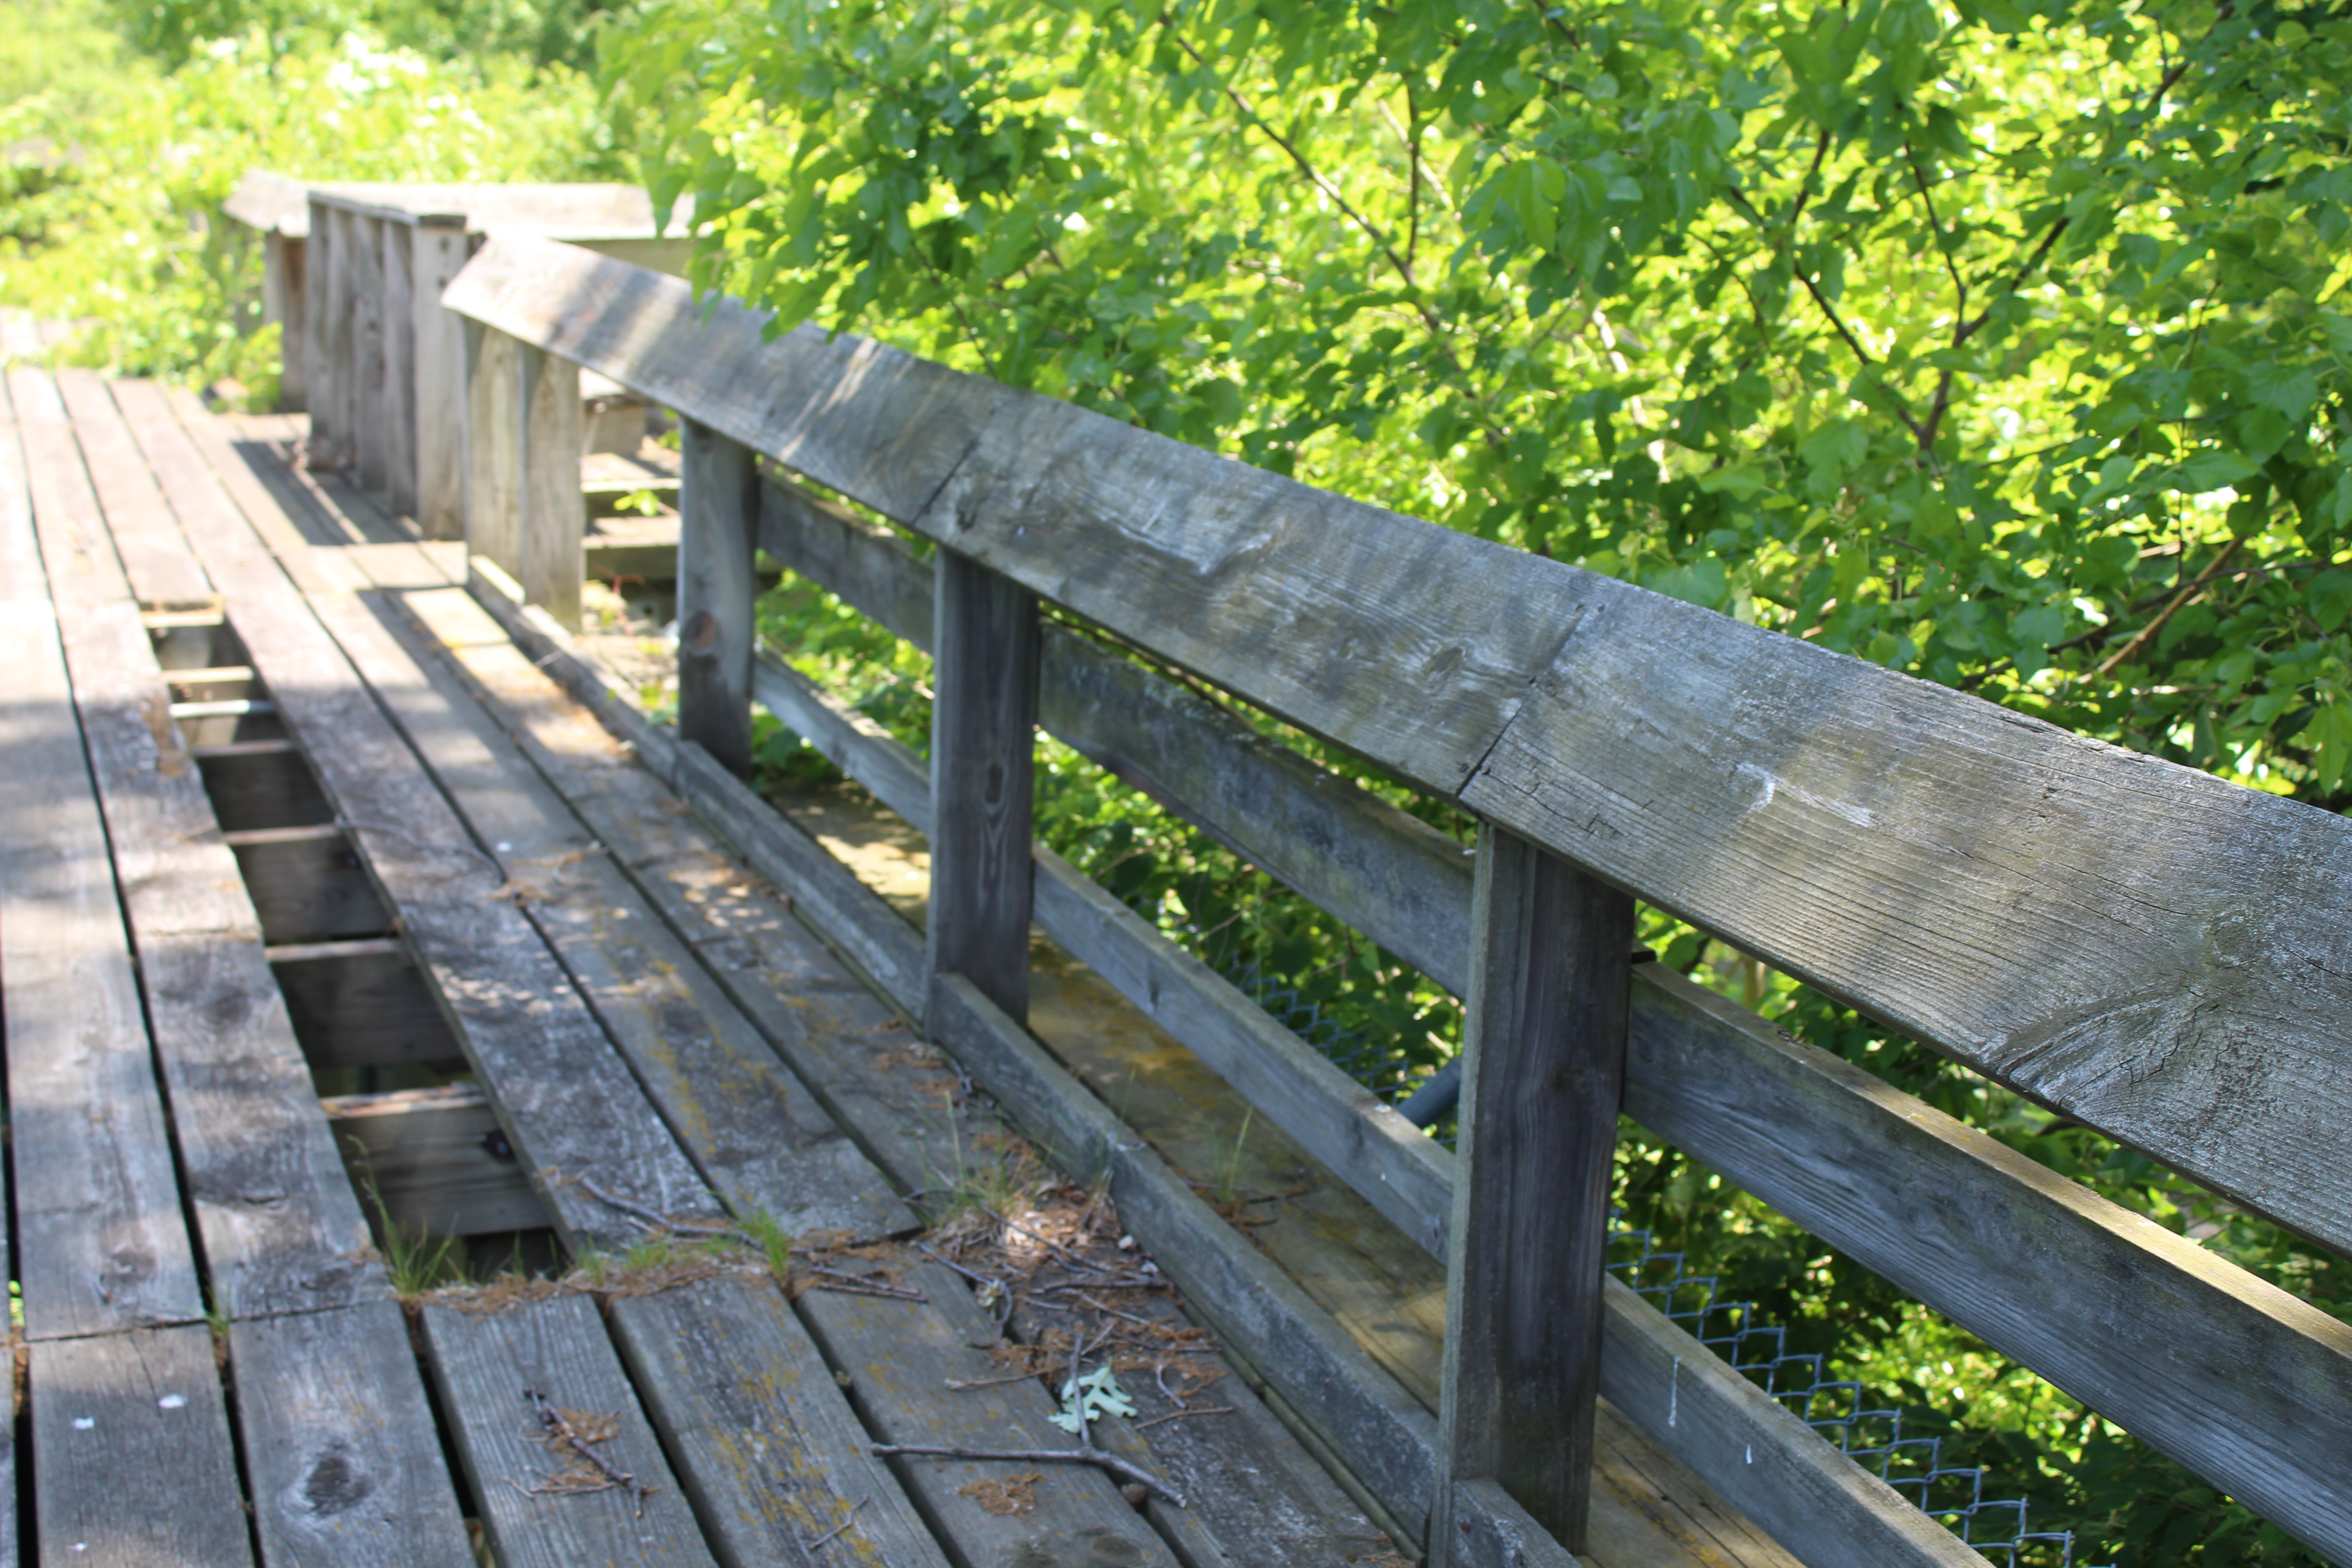 Wooden walkway with missing plank at Belle Isle Zoo